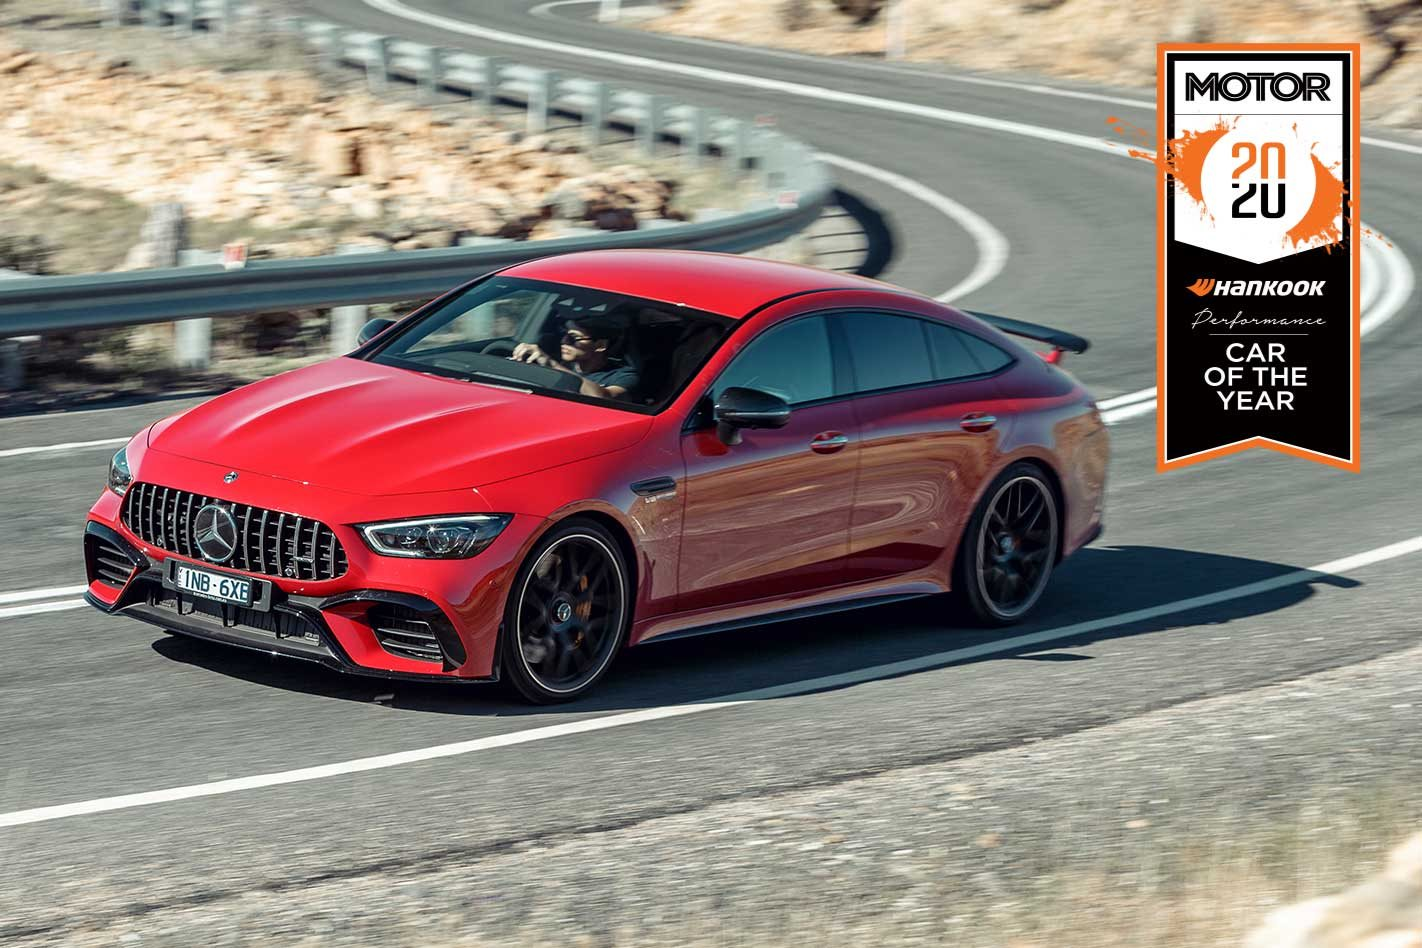 PCOTY 2020: Mercedes-AMG GT63 S - 2nd Place